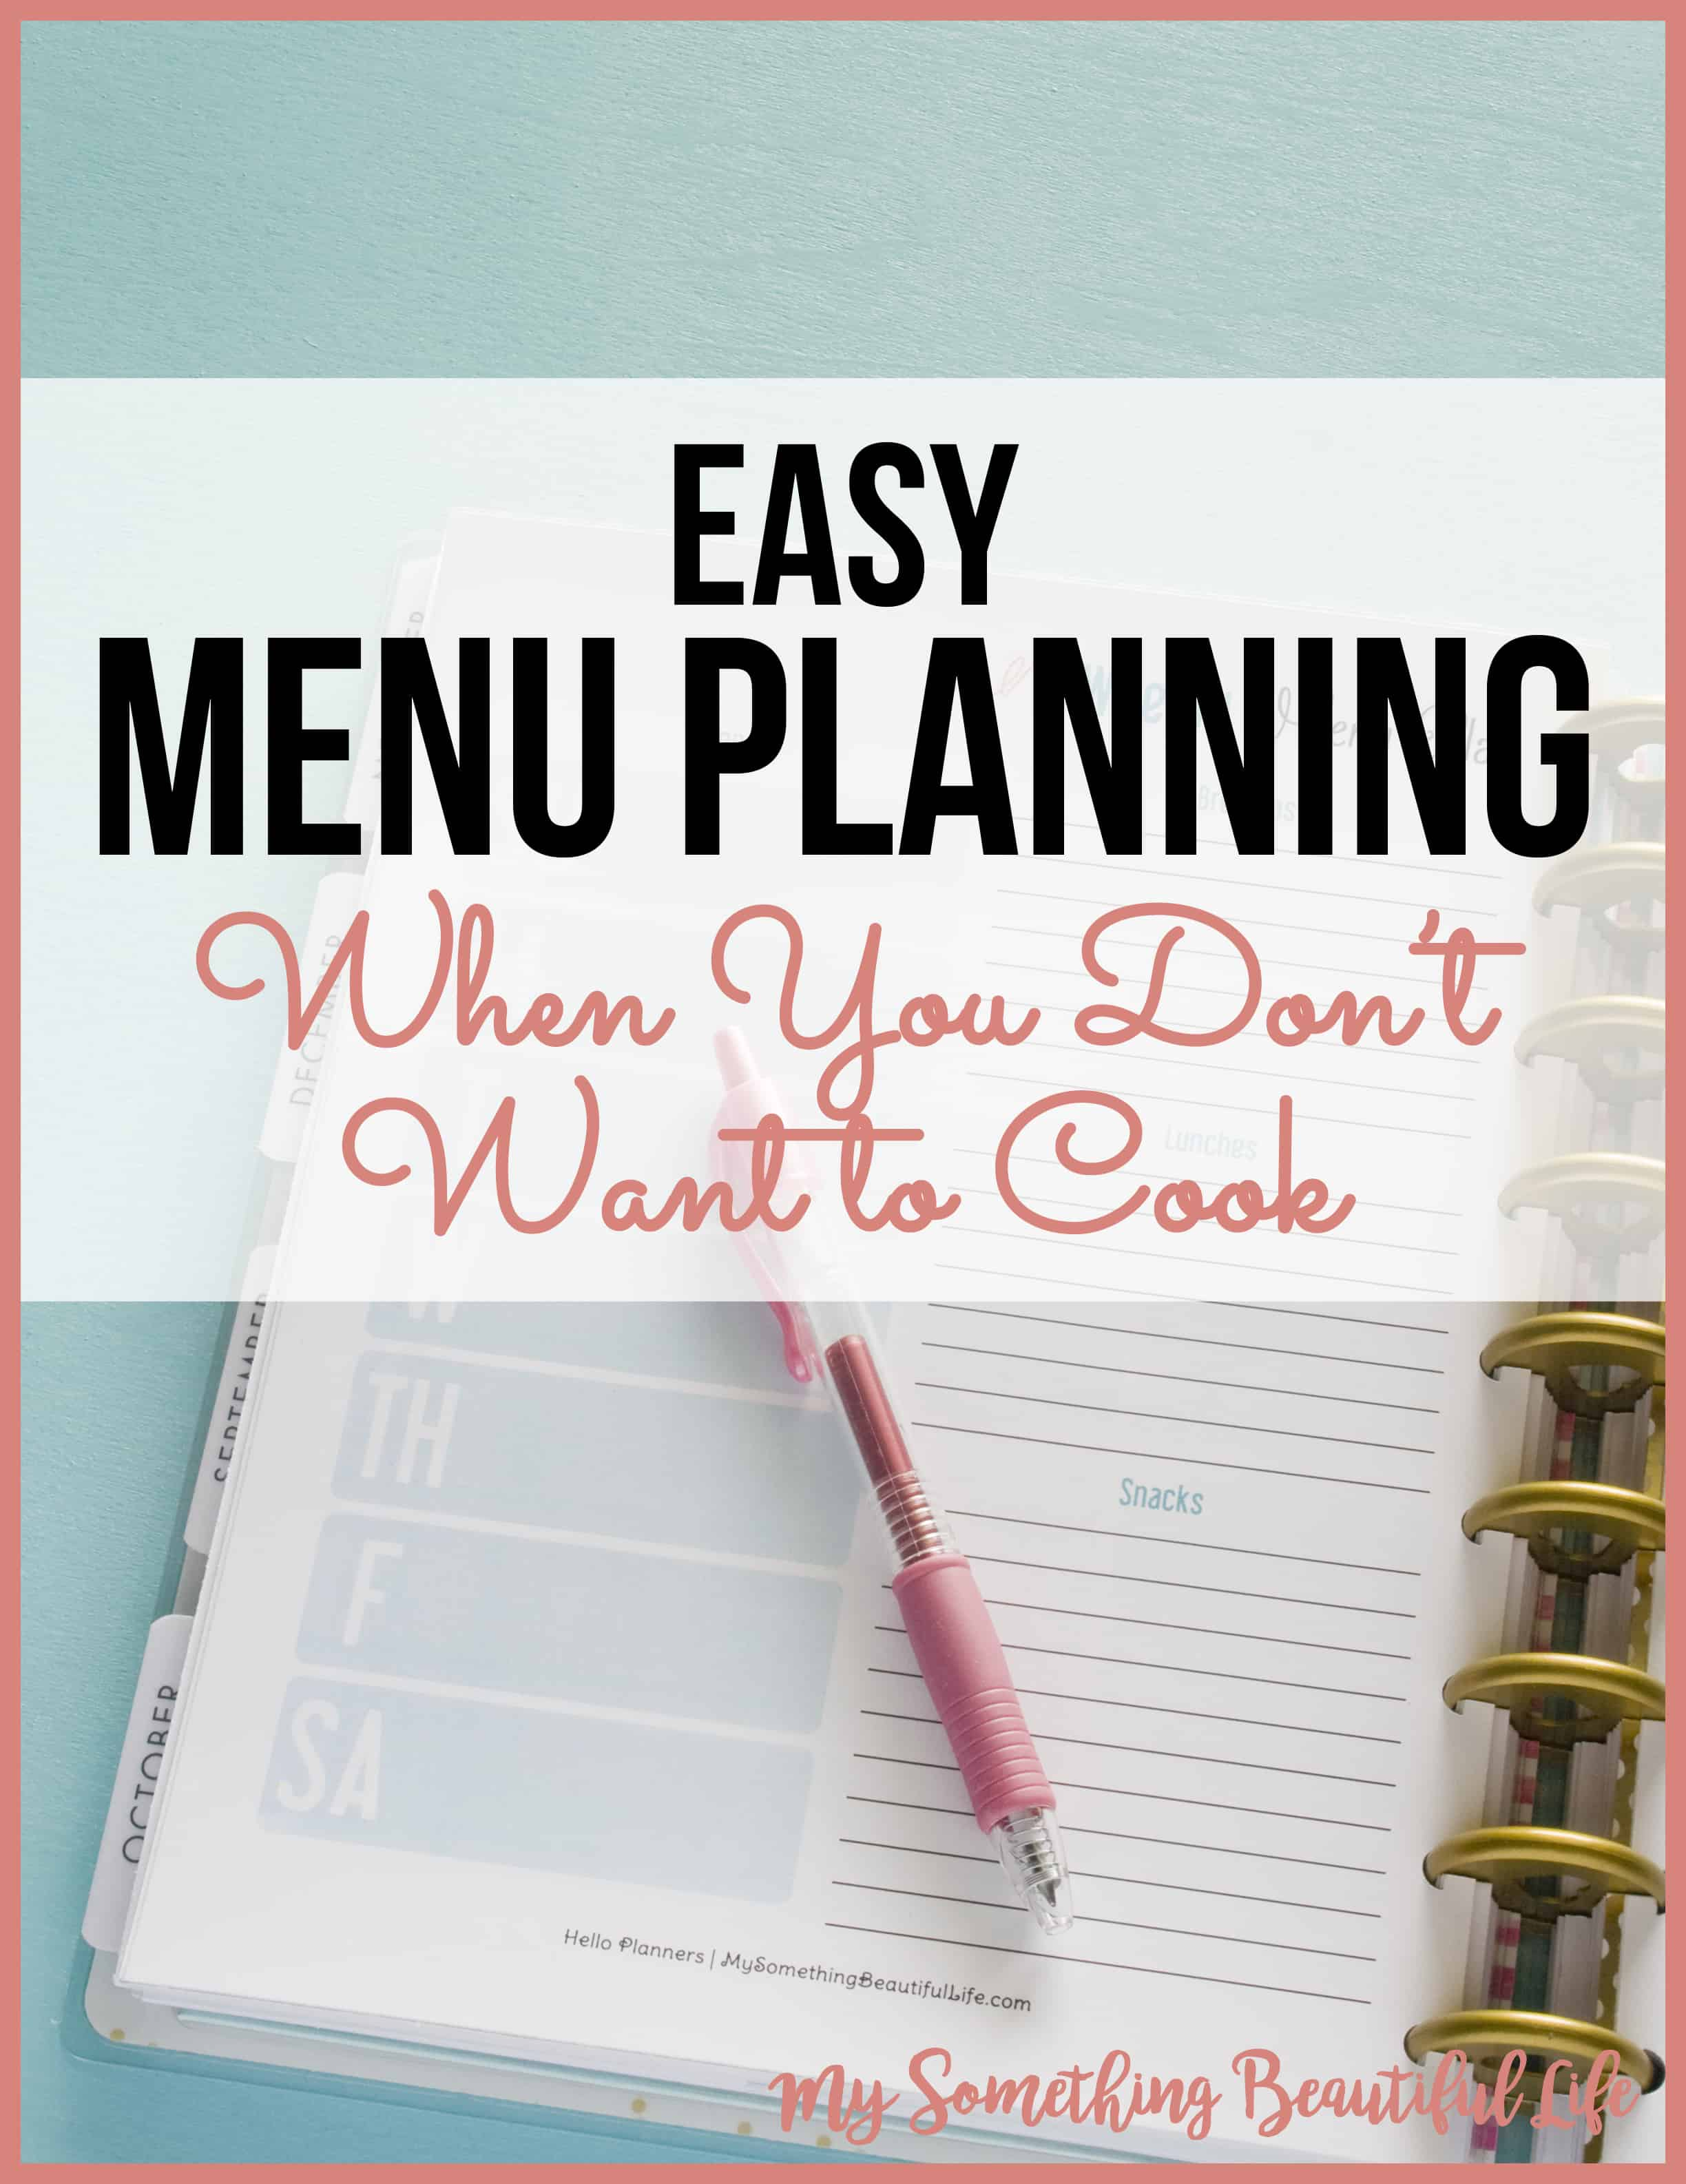 Easy Menu Planning | Meal Planner | Menu Plan | Free Printable | My Something Beautiful Life